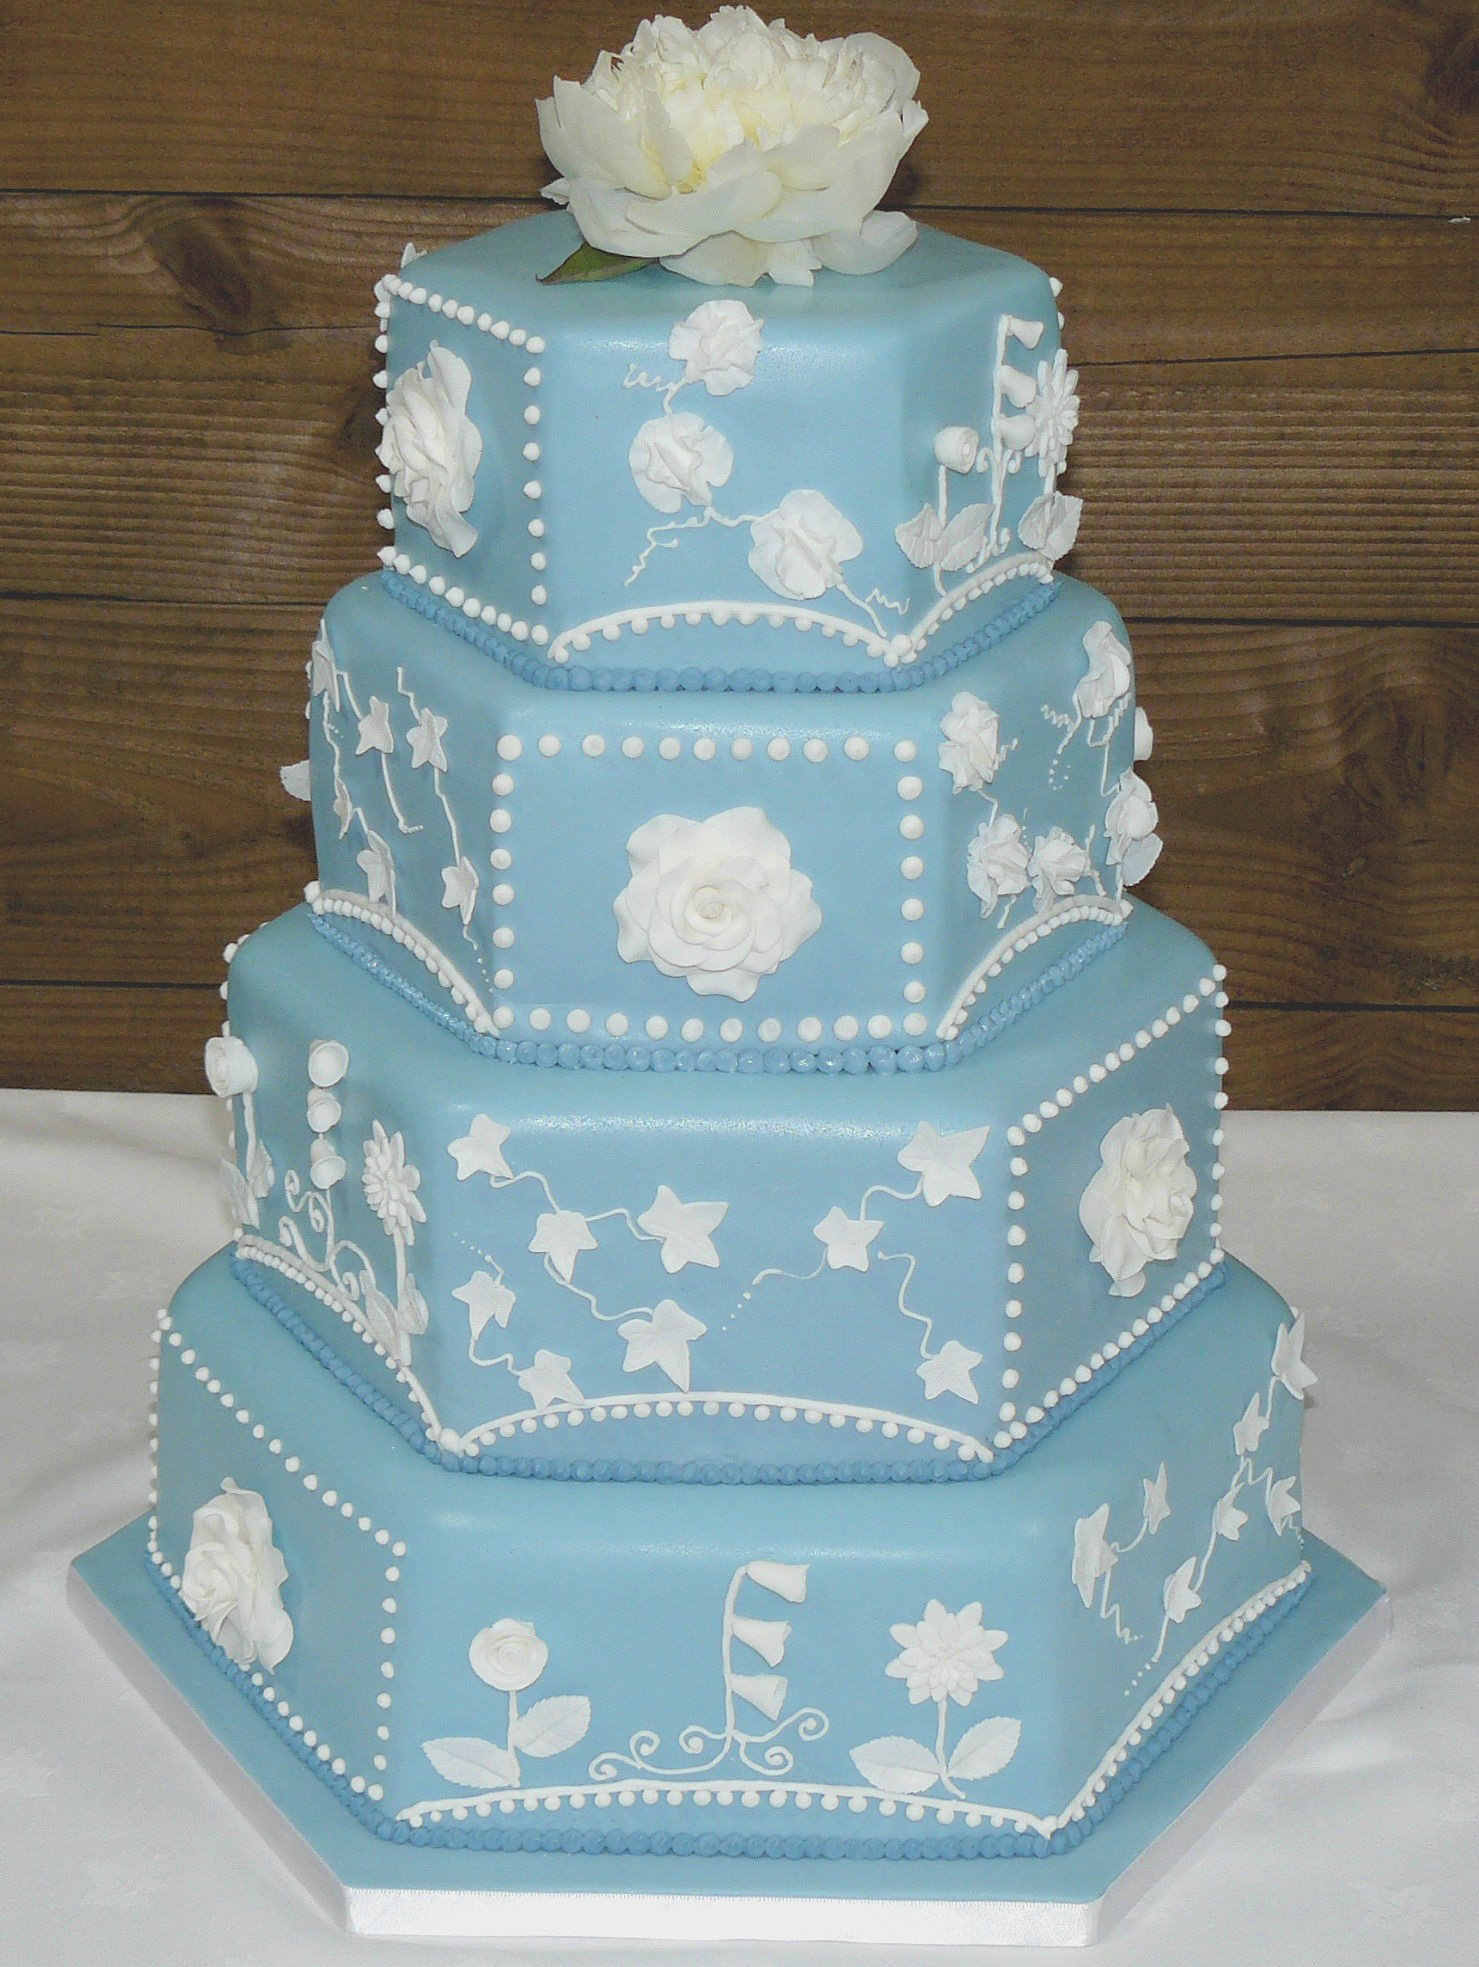 Wedding cakes in cornwall cake classes cupcake gift Wedgewood designs